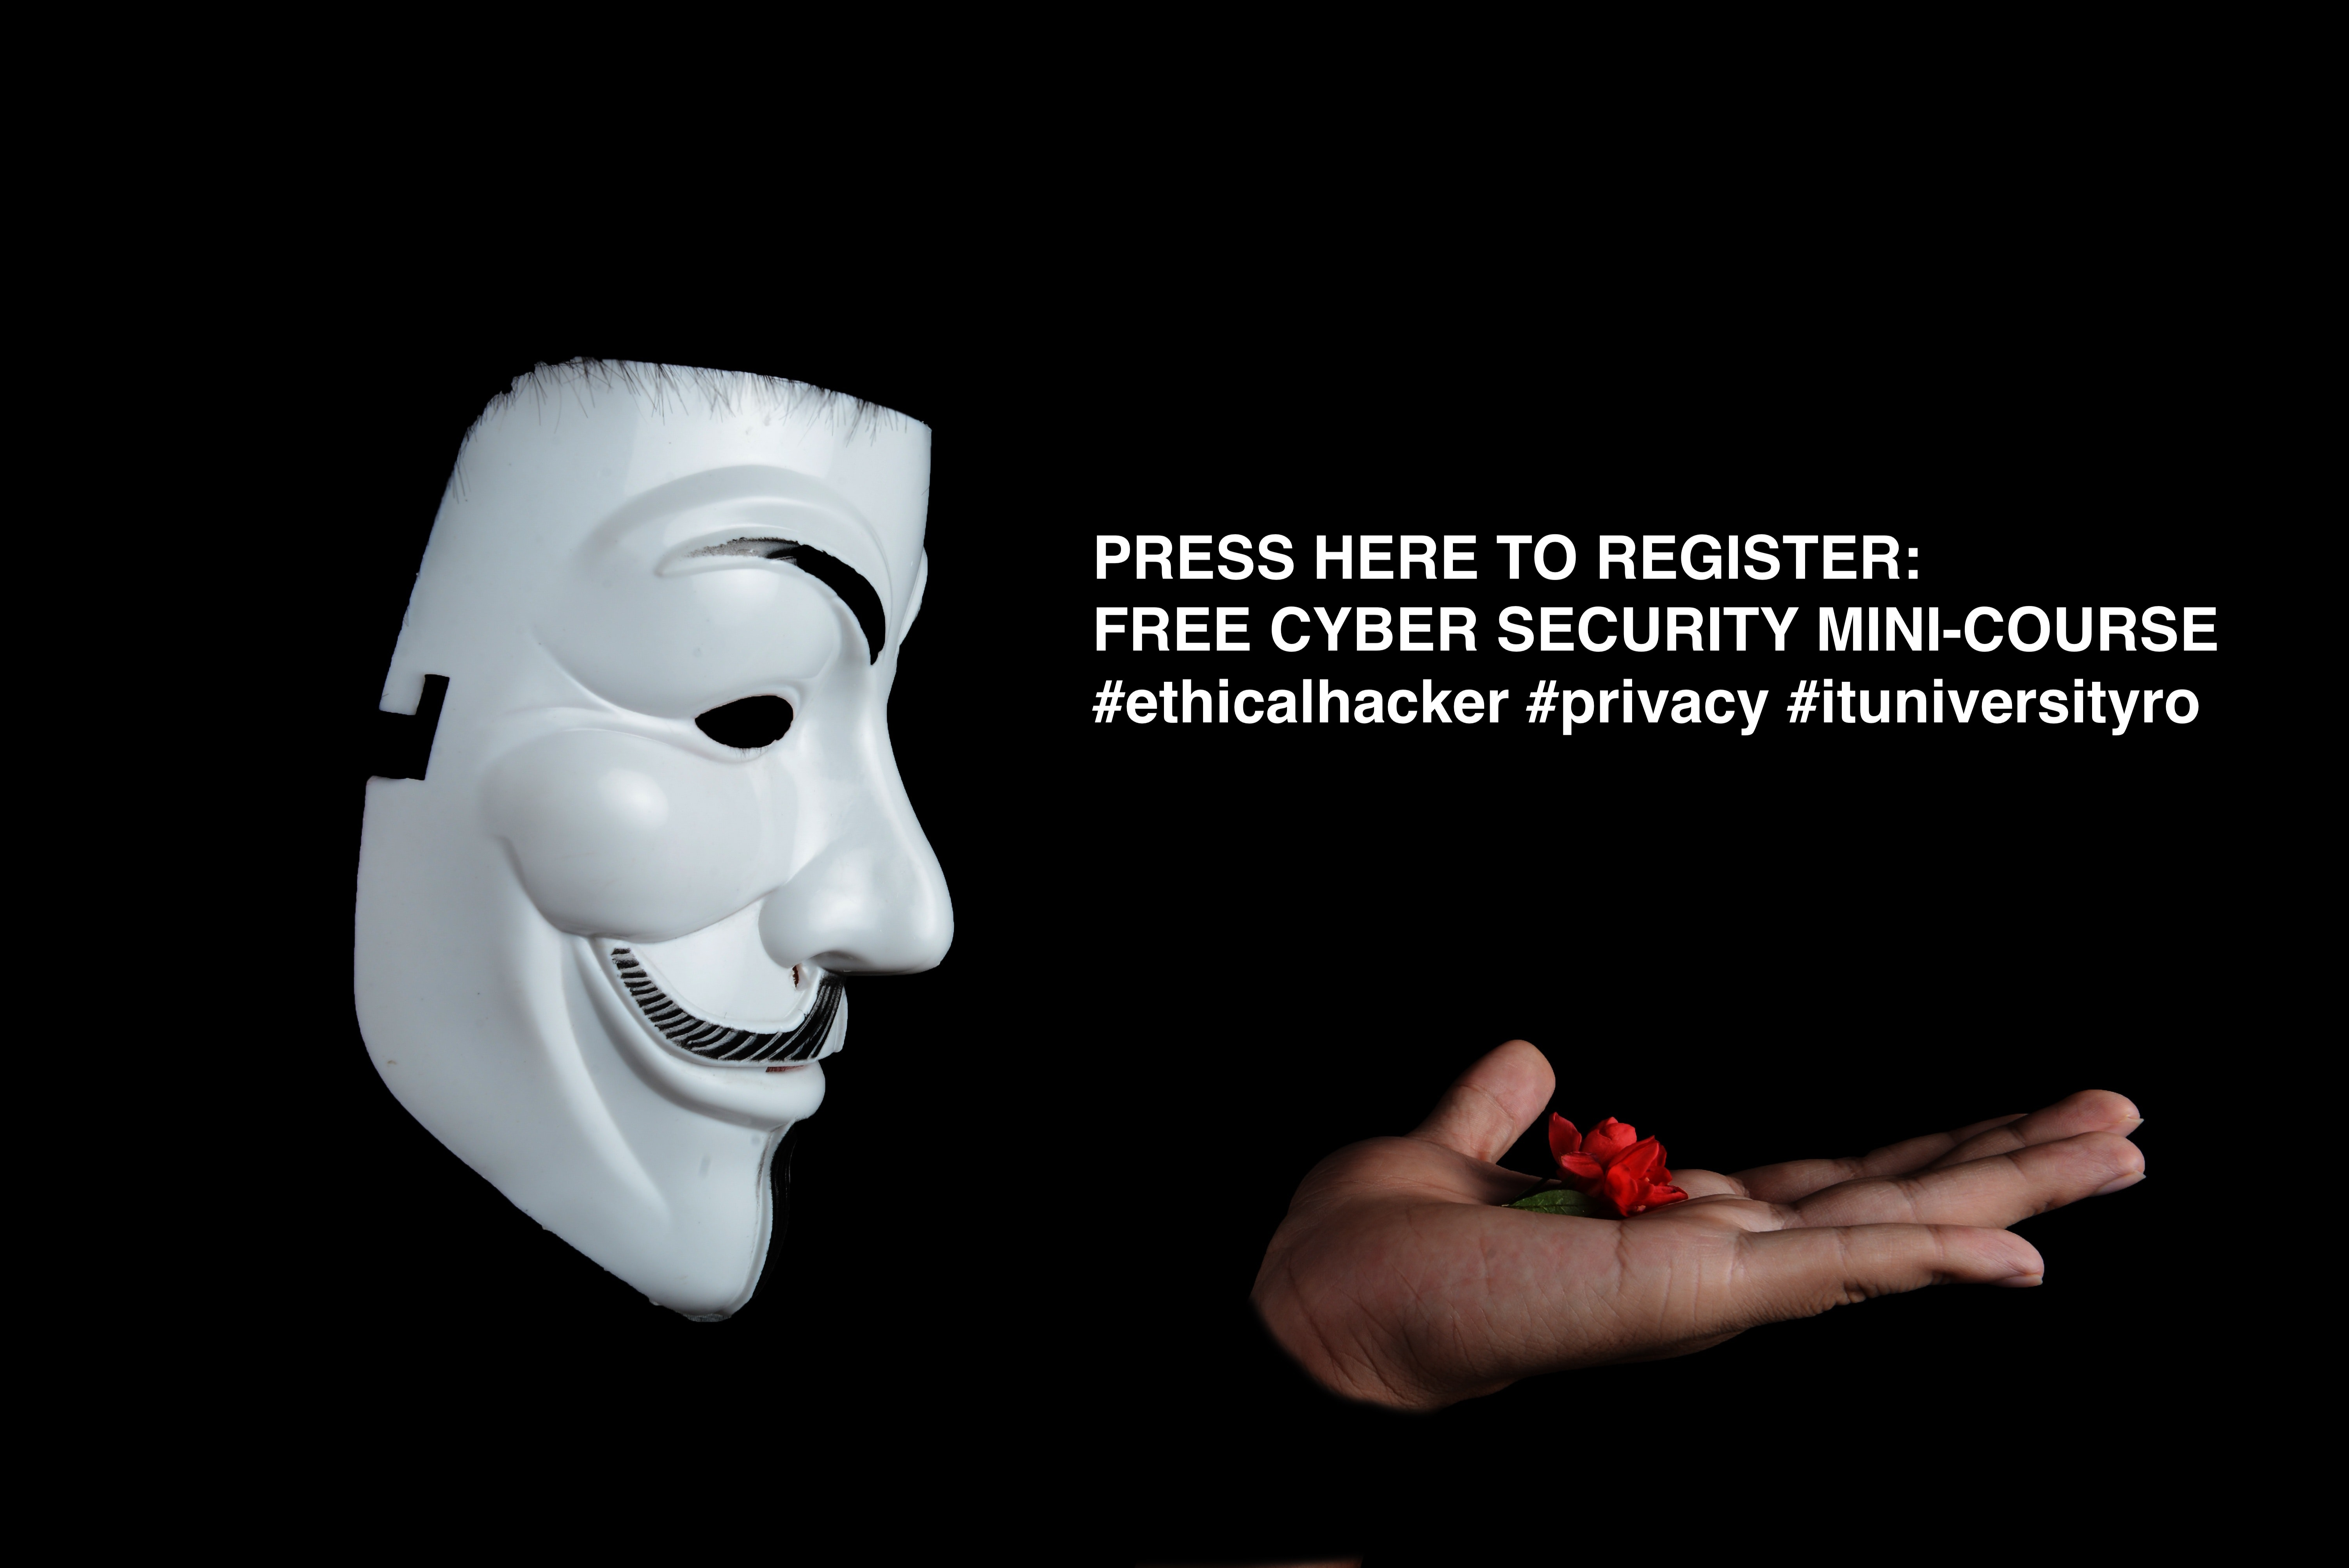 free promo hacking course osint cybersecurity